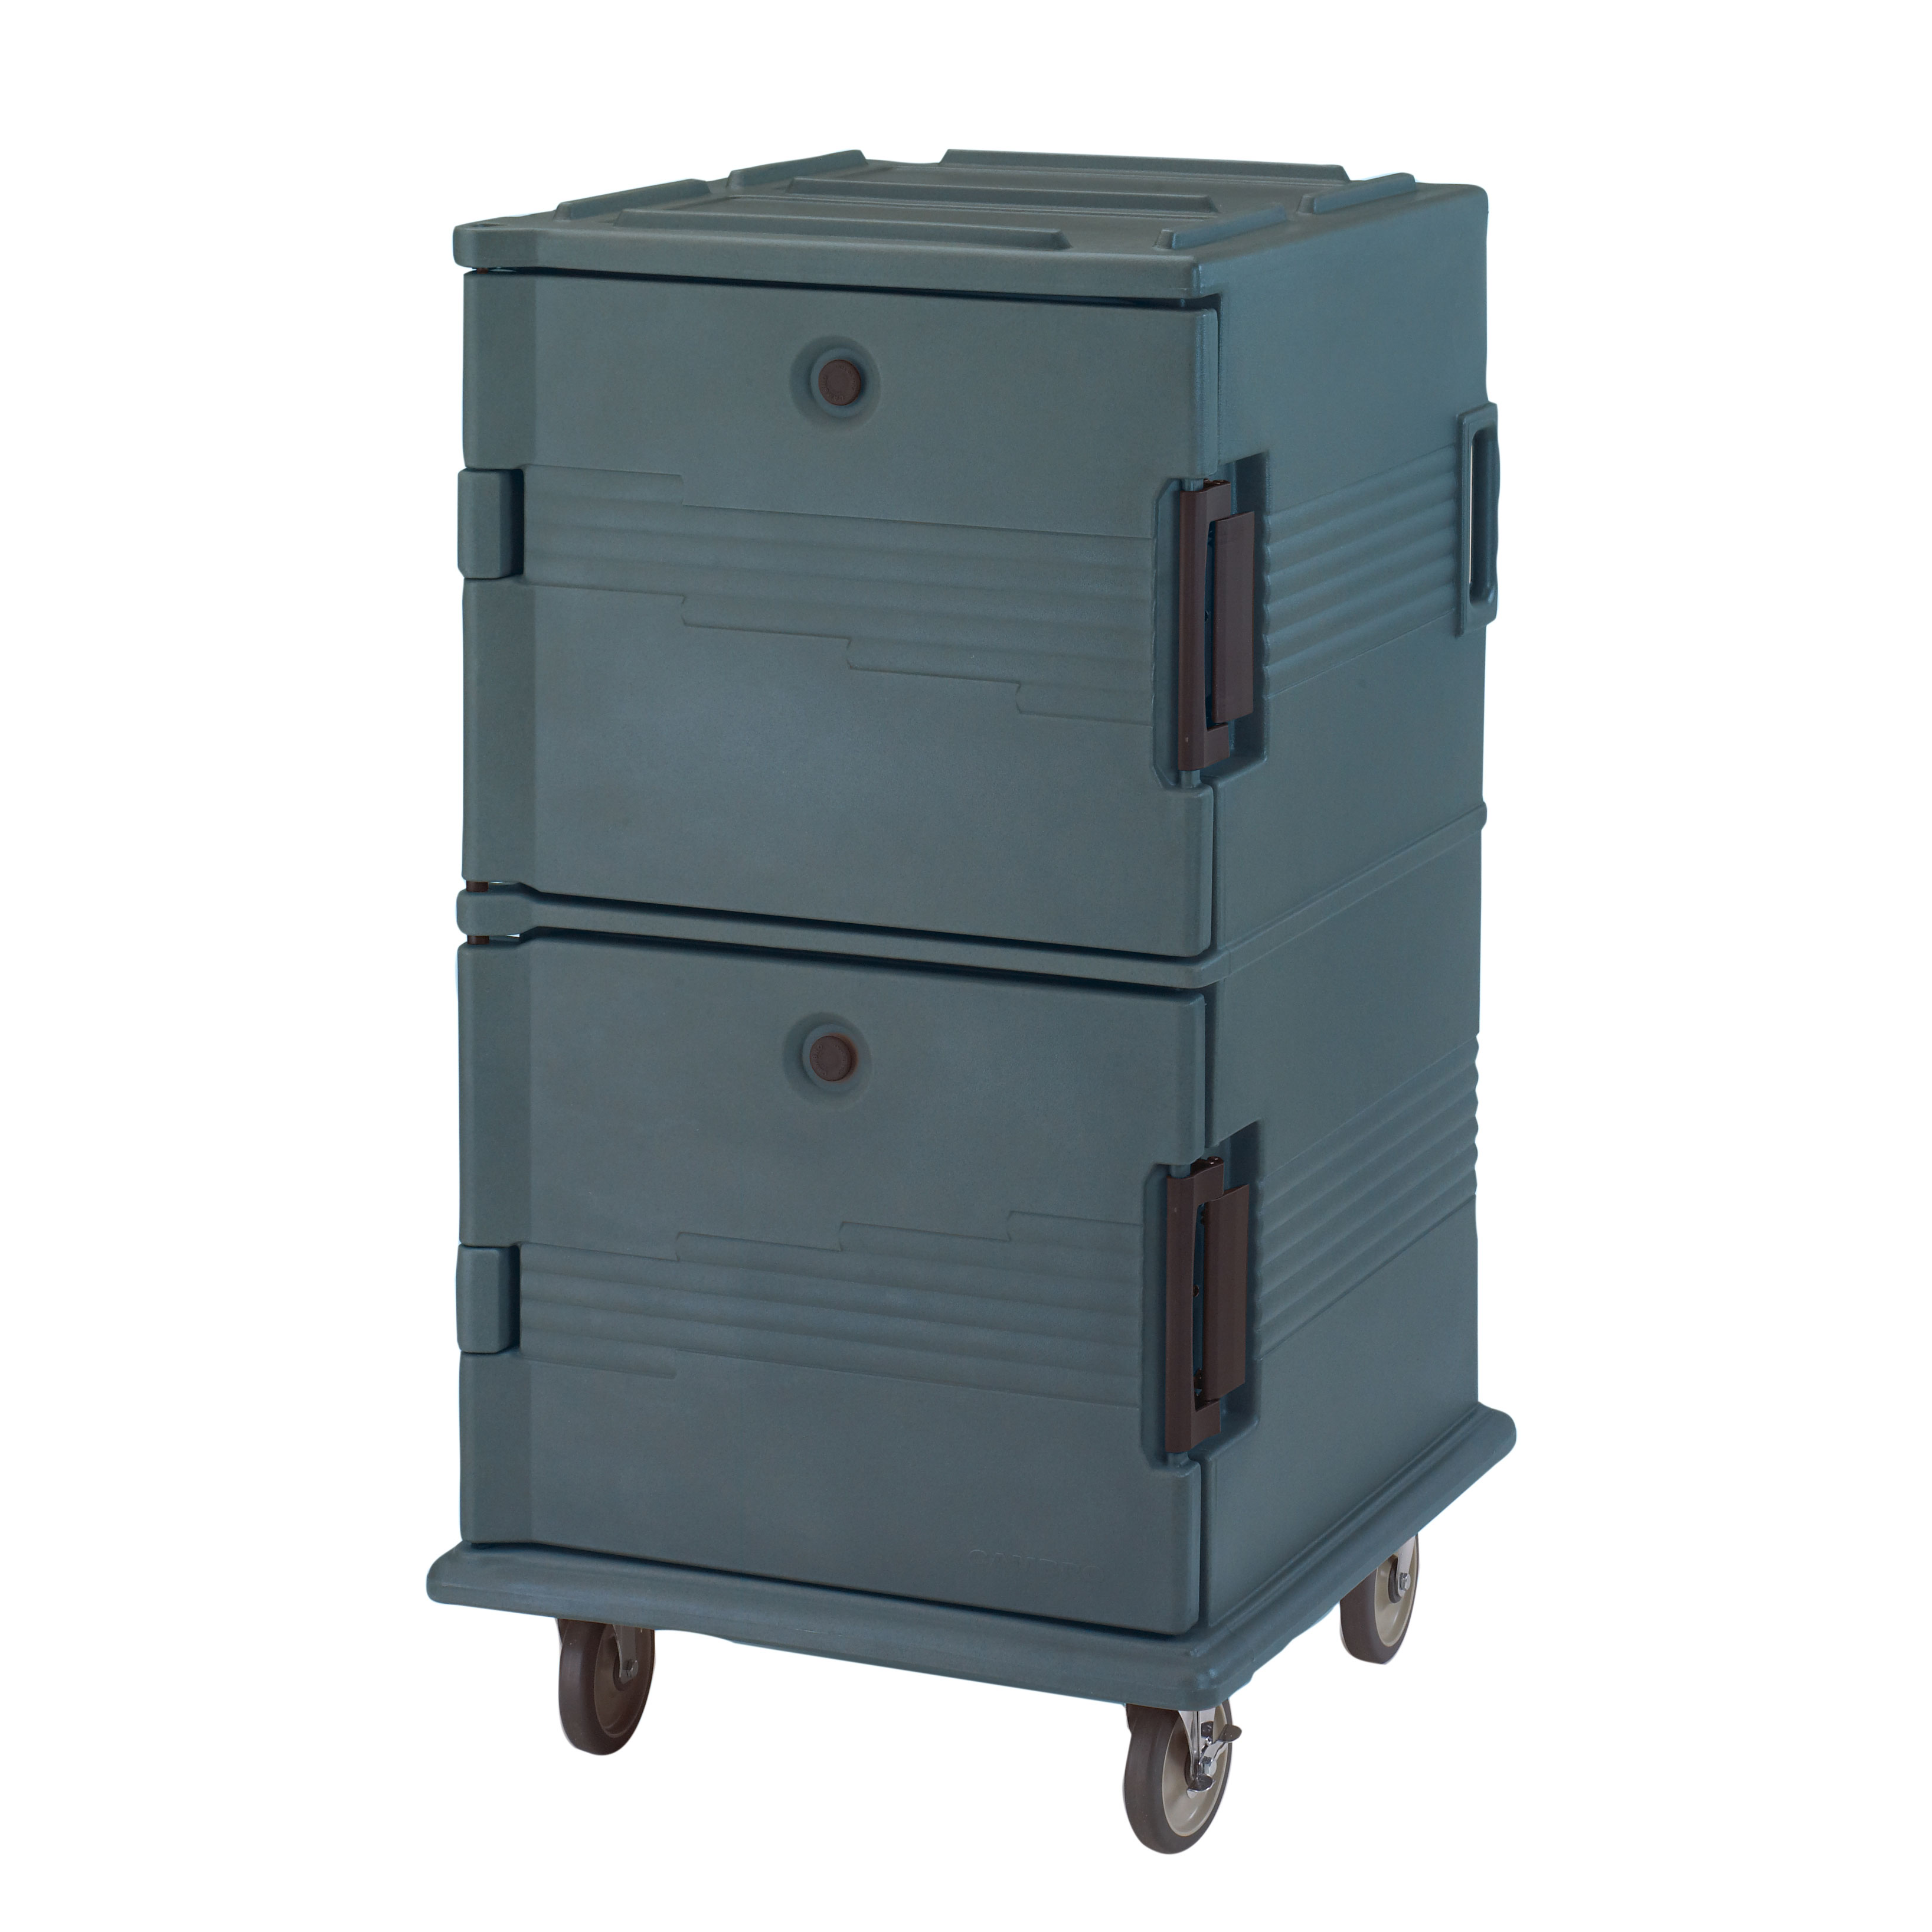 Cambro UPC1600SP191 proofing/holding cabinets